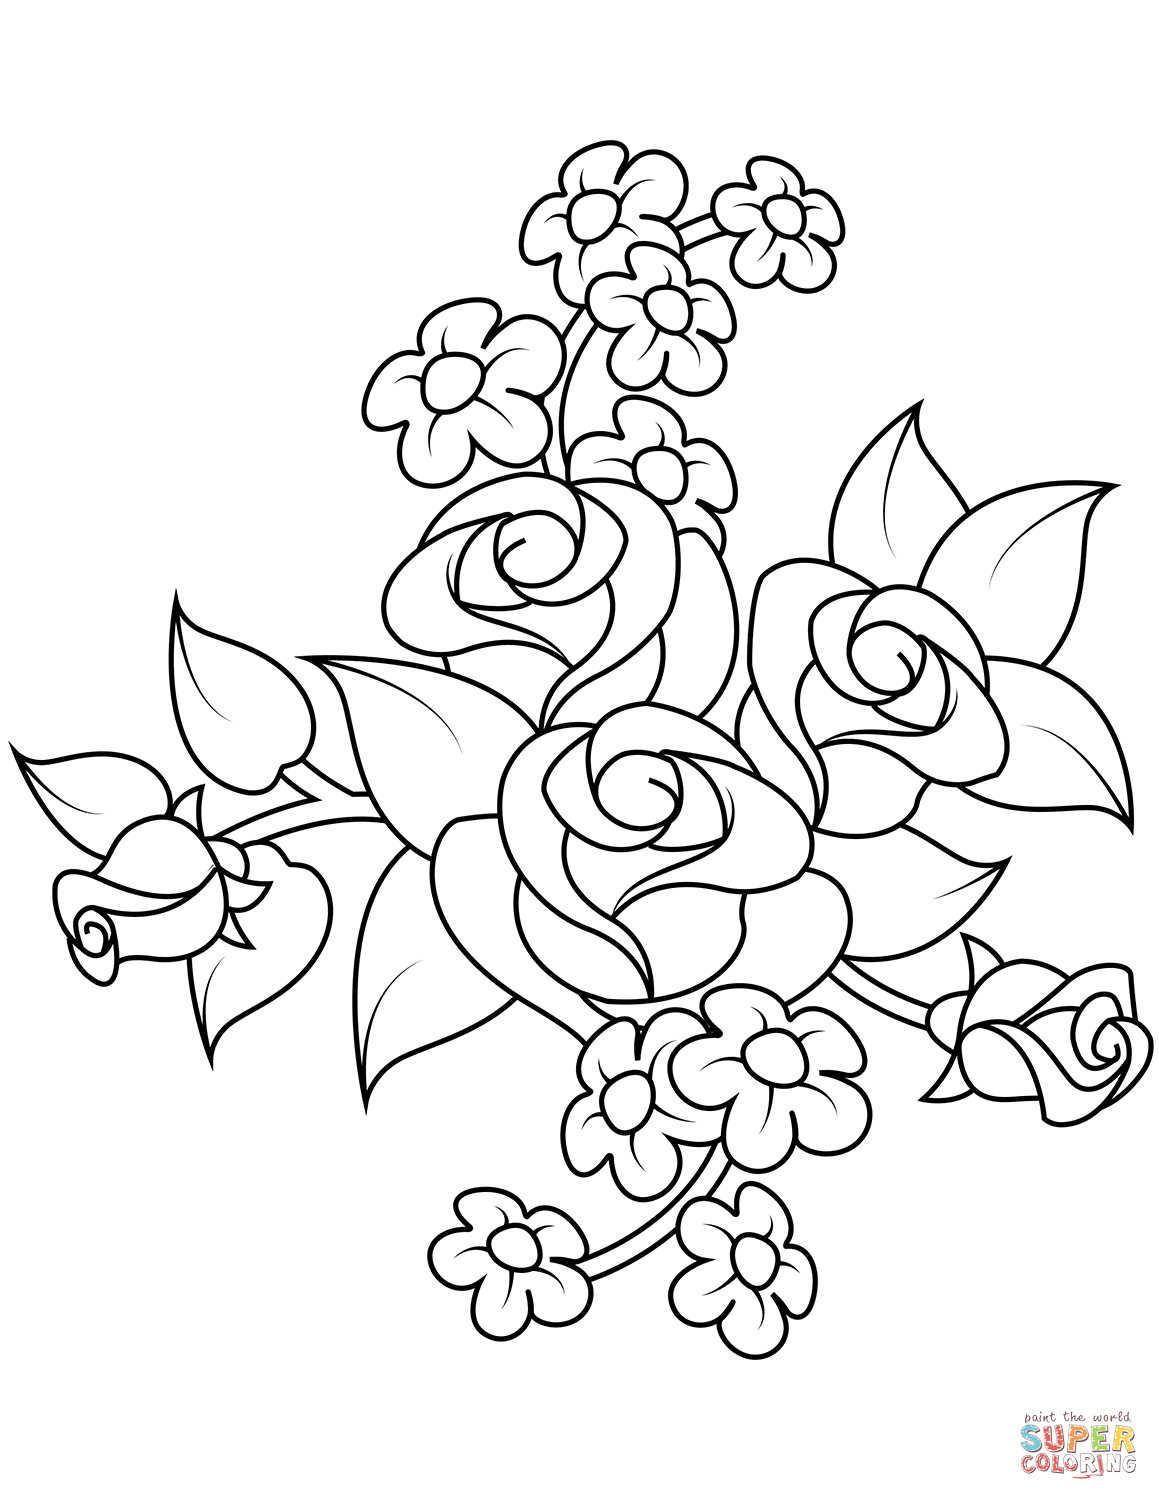 coloring book rose printable rose coloring pages for kids cool2bkids rose book coloring